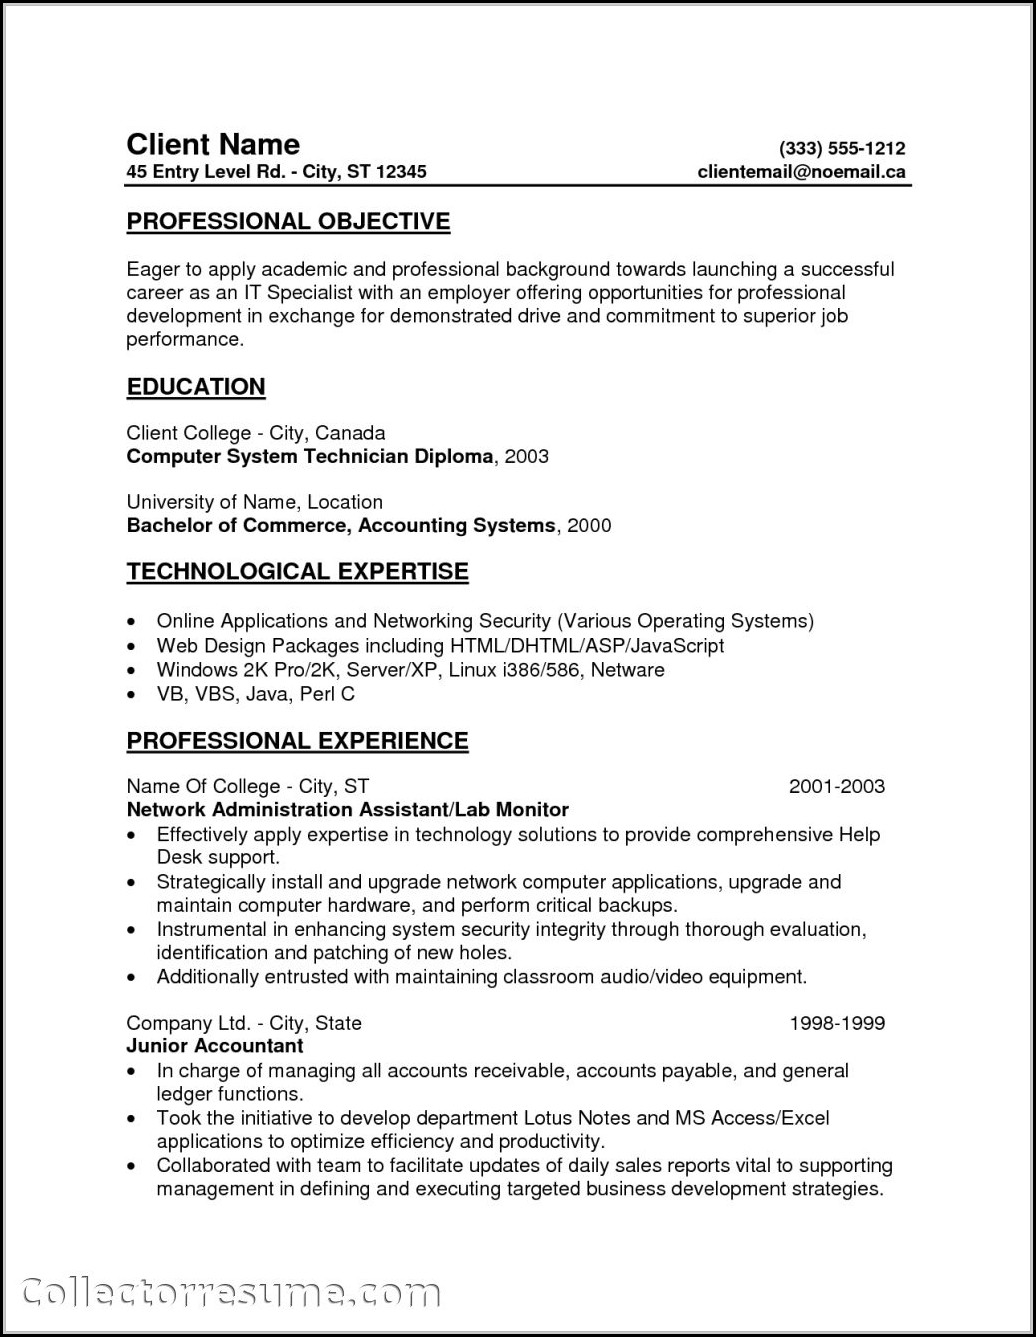 Free Resume Templates For Entry Level Jobs